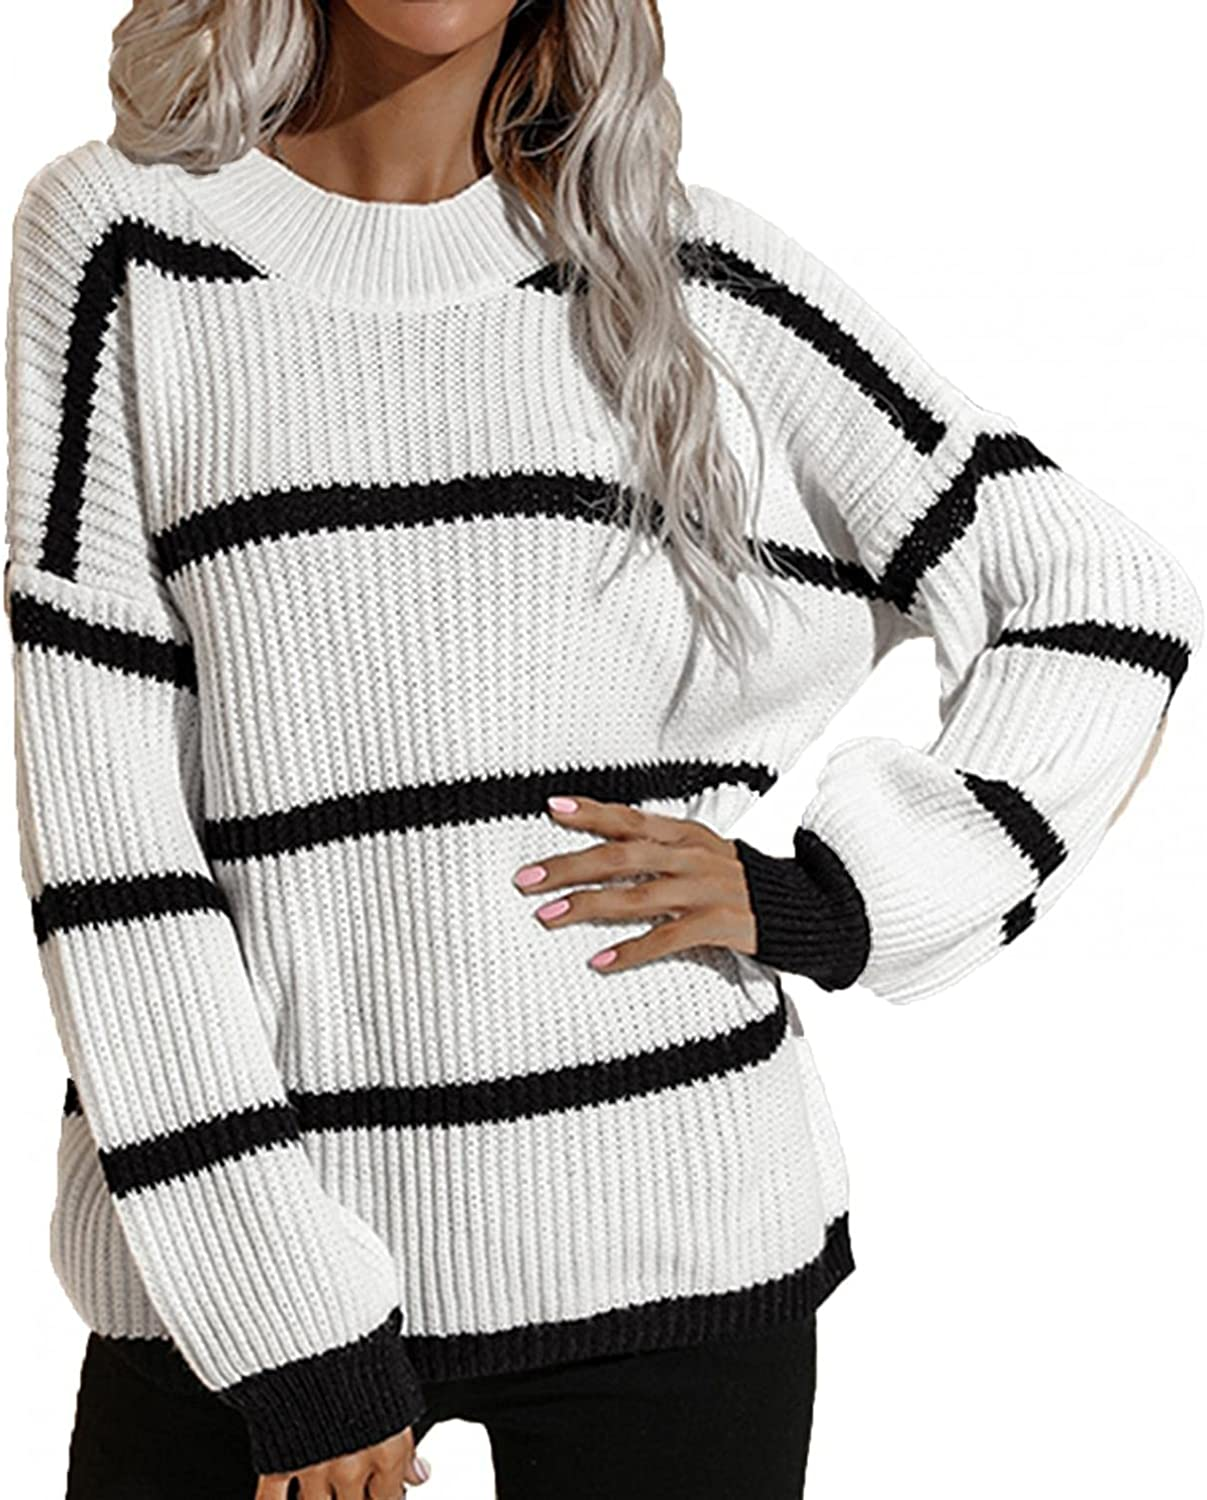 VEKDONE Women Oversized Round Neck Striped Color Block Loose Knitted Pullover Sweater Comfy Casual Long Sleeve Jumper Top